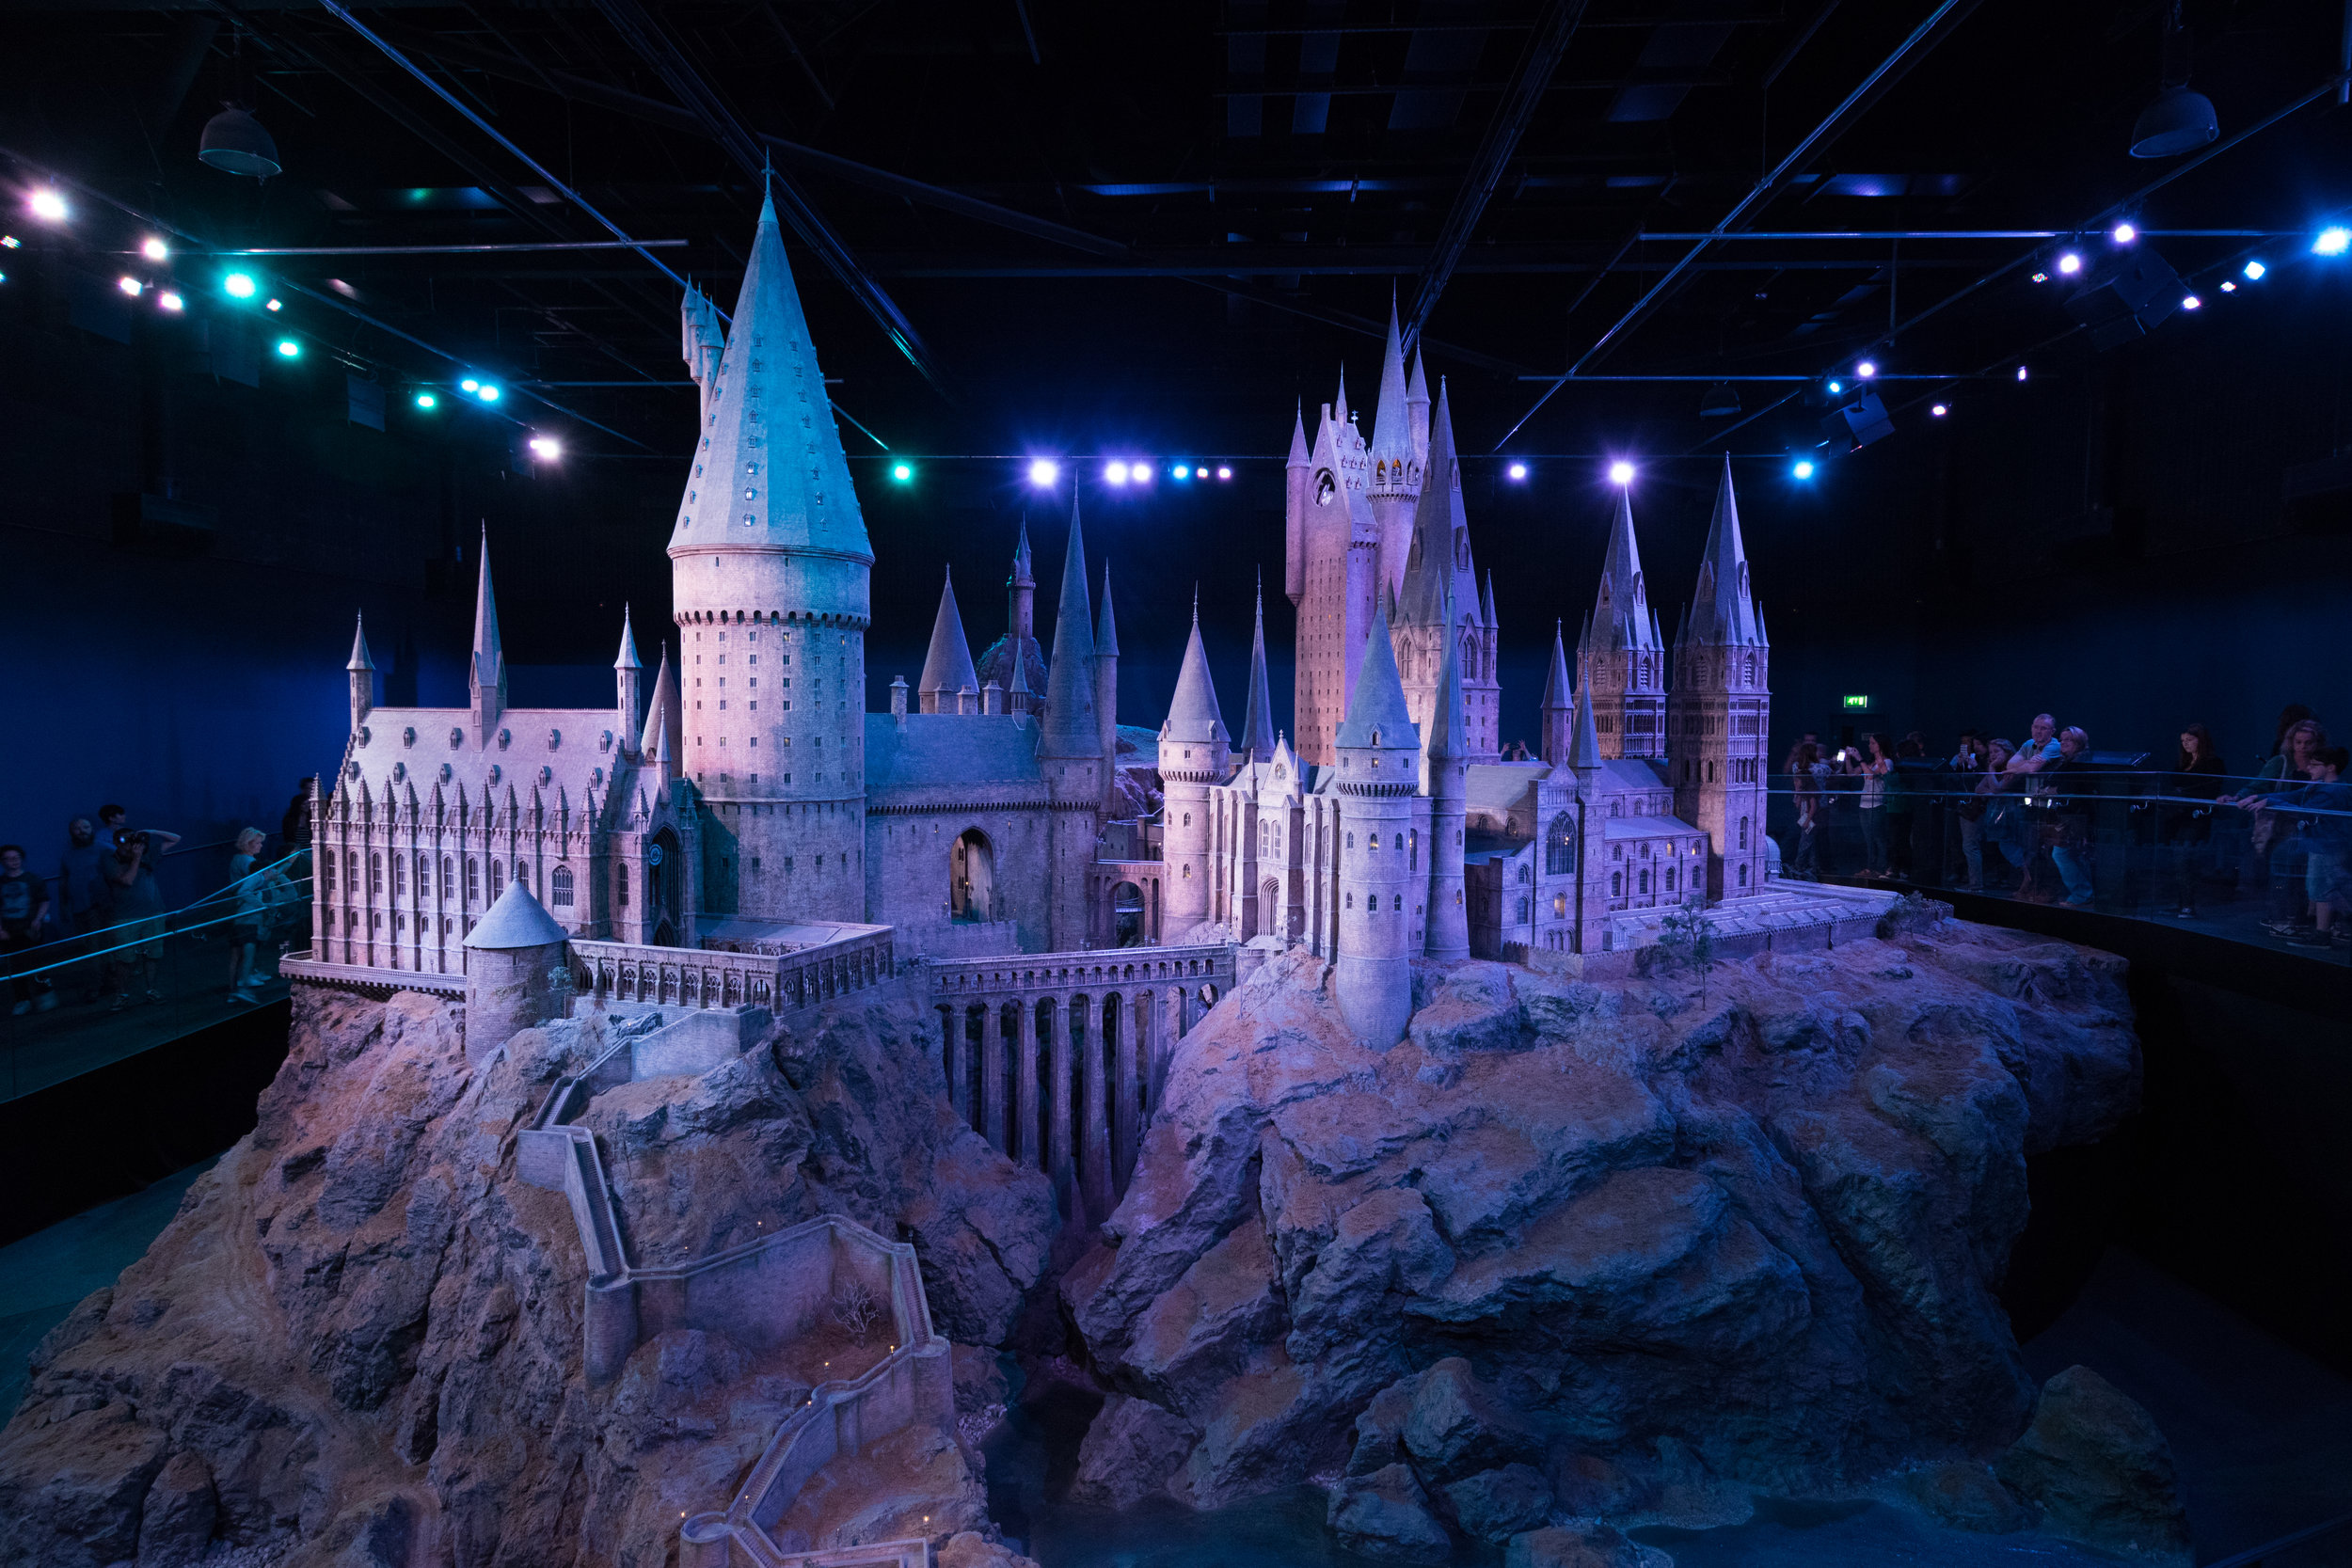 The master 1:24 scale model of Hogwarts, updated for every book and movie to include every new detail.